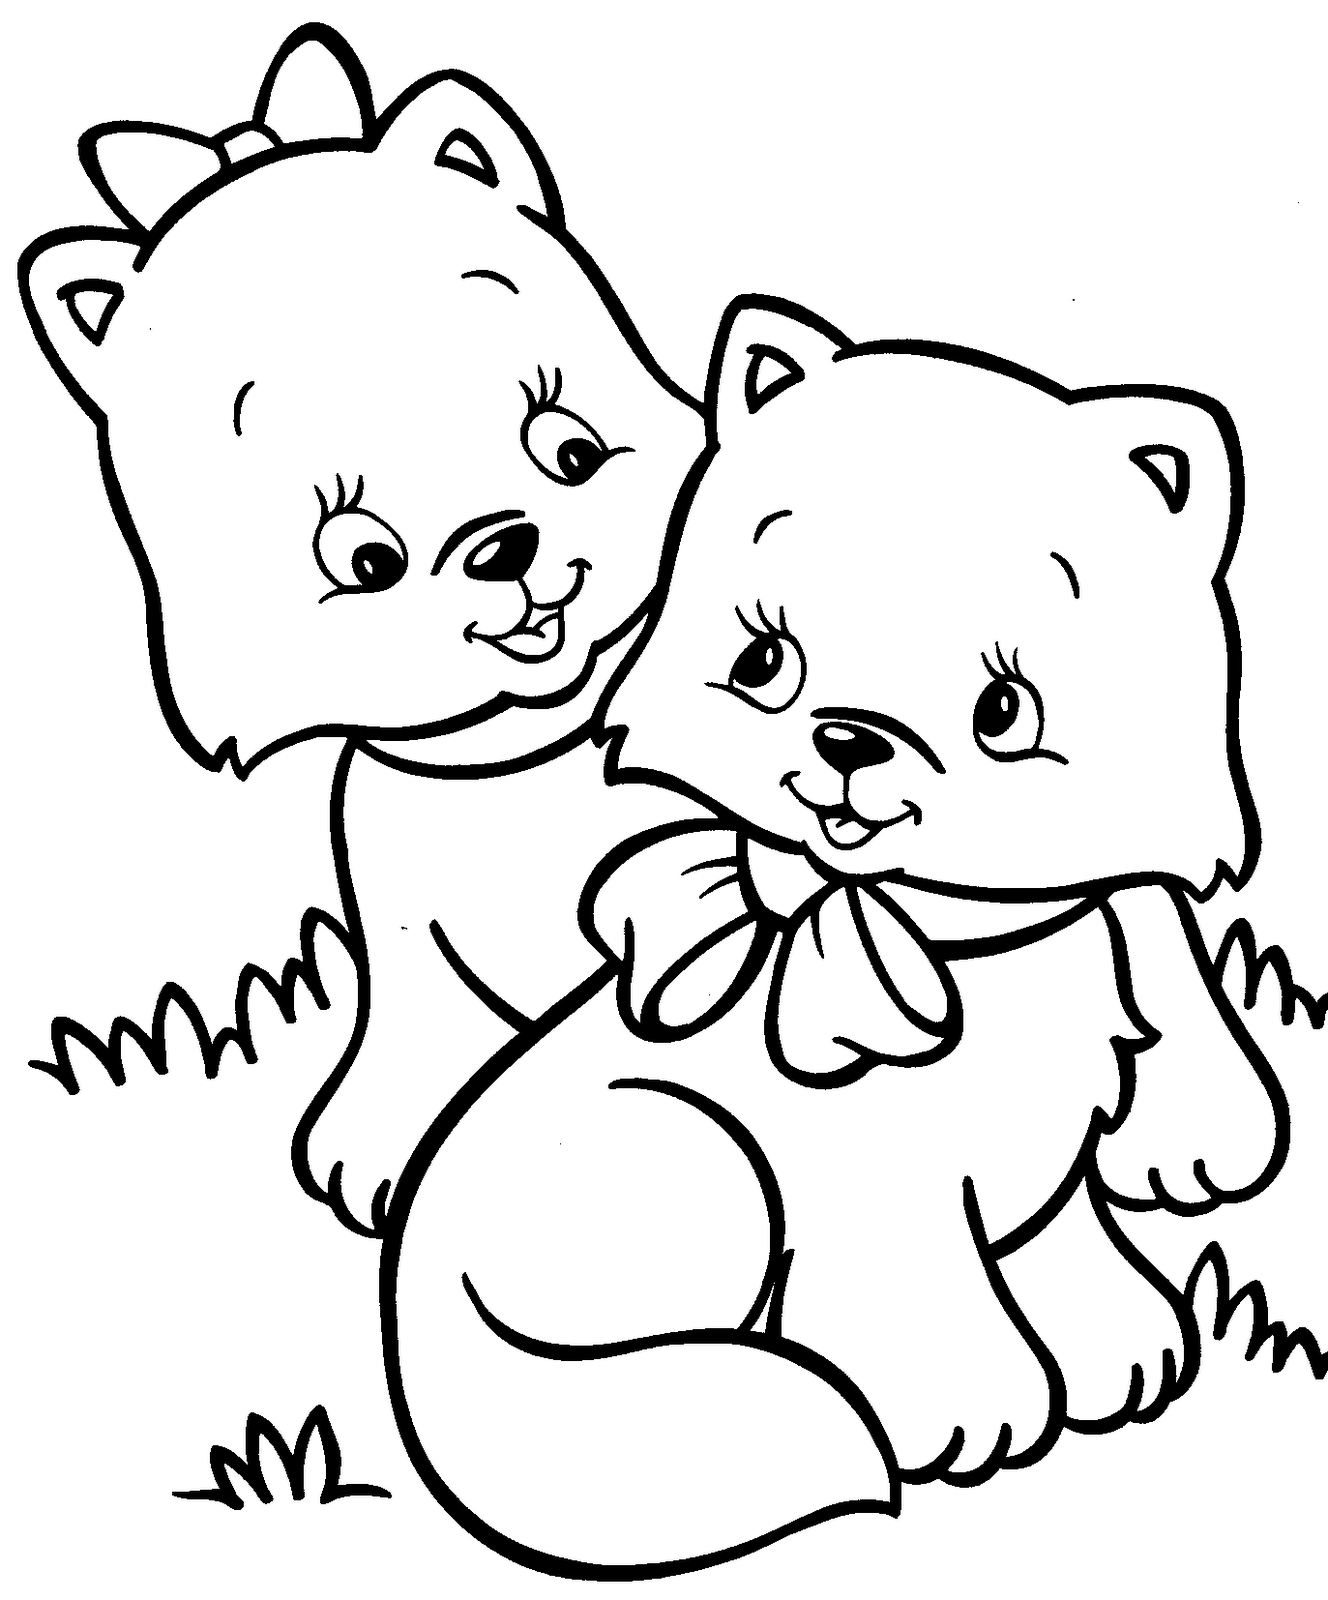 1328x1600 Innovative Kitten Coloring Pages Cute Page Free Printable